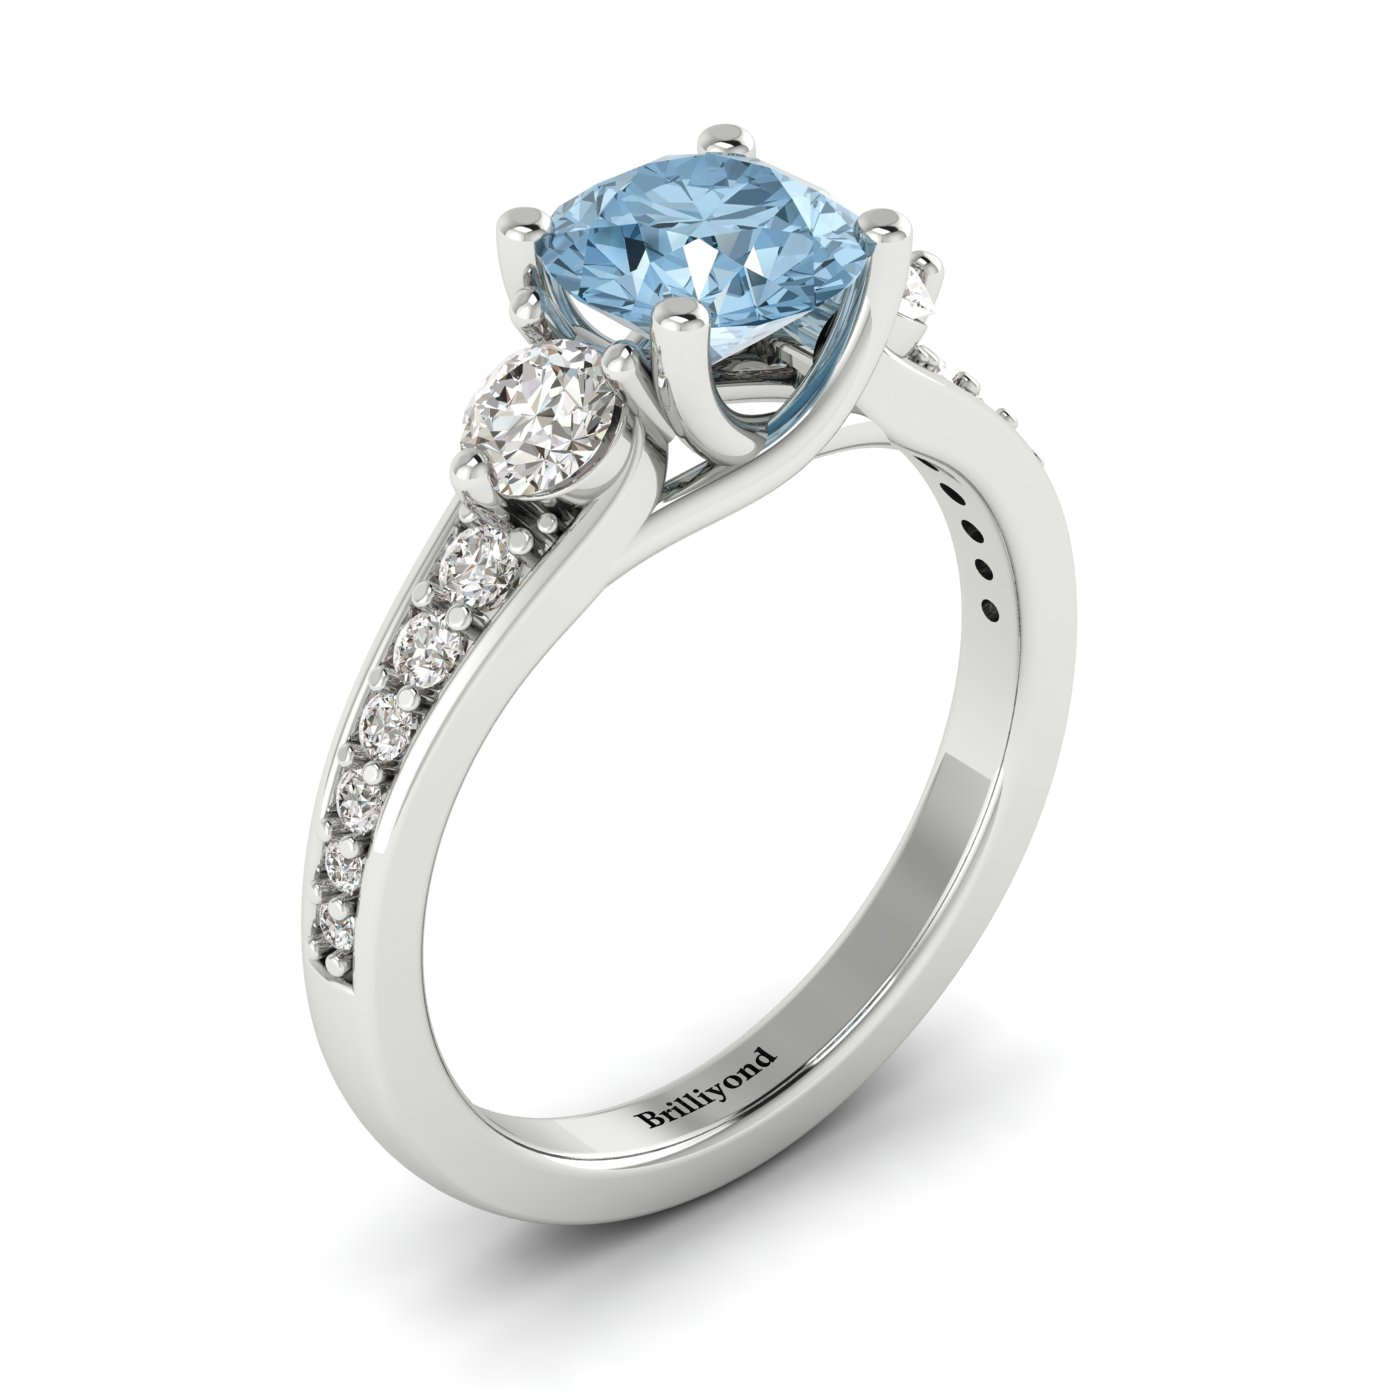 Aquamarine White Gold Three Stone Engagement Ring Sorento_image2